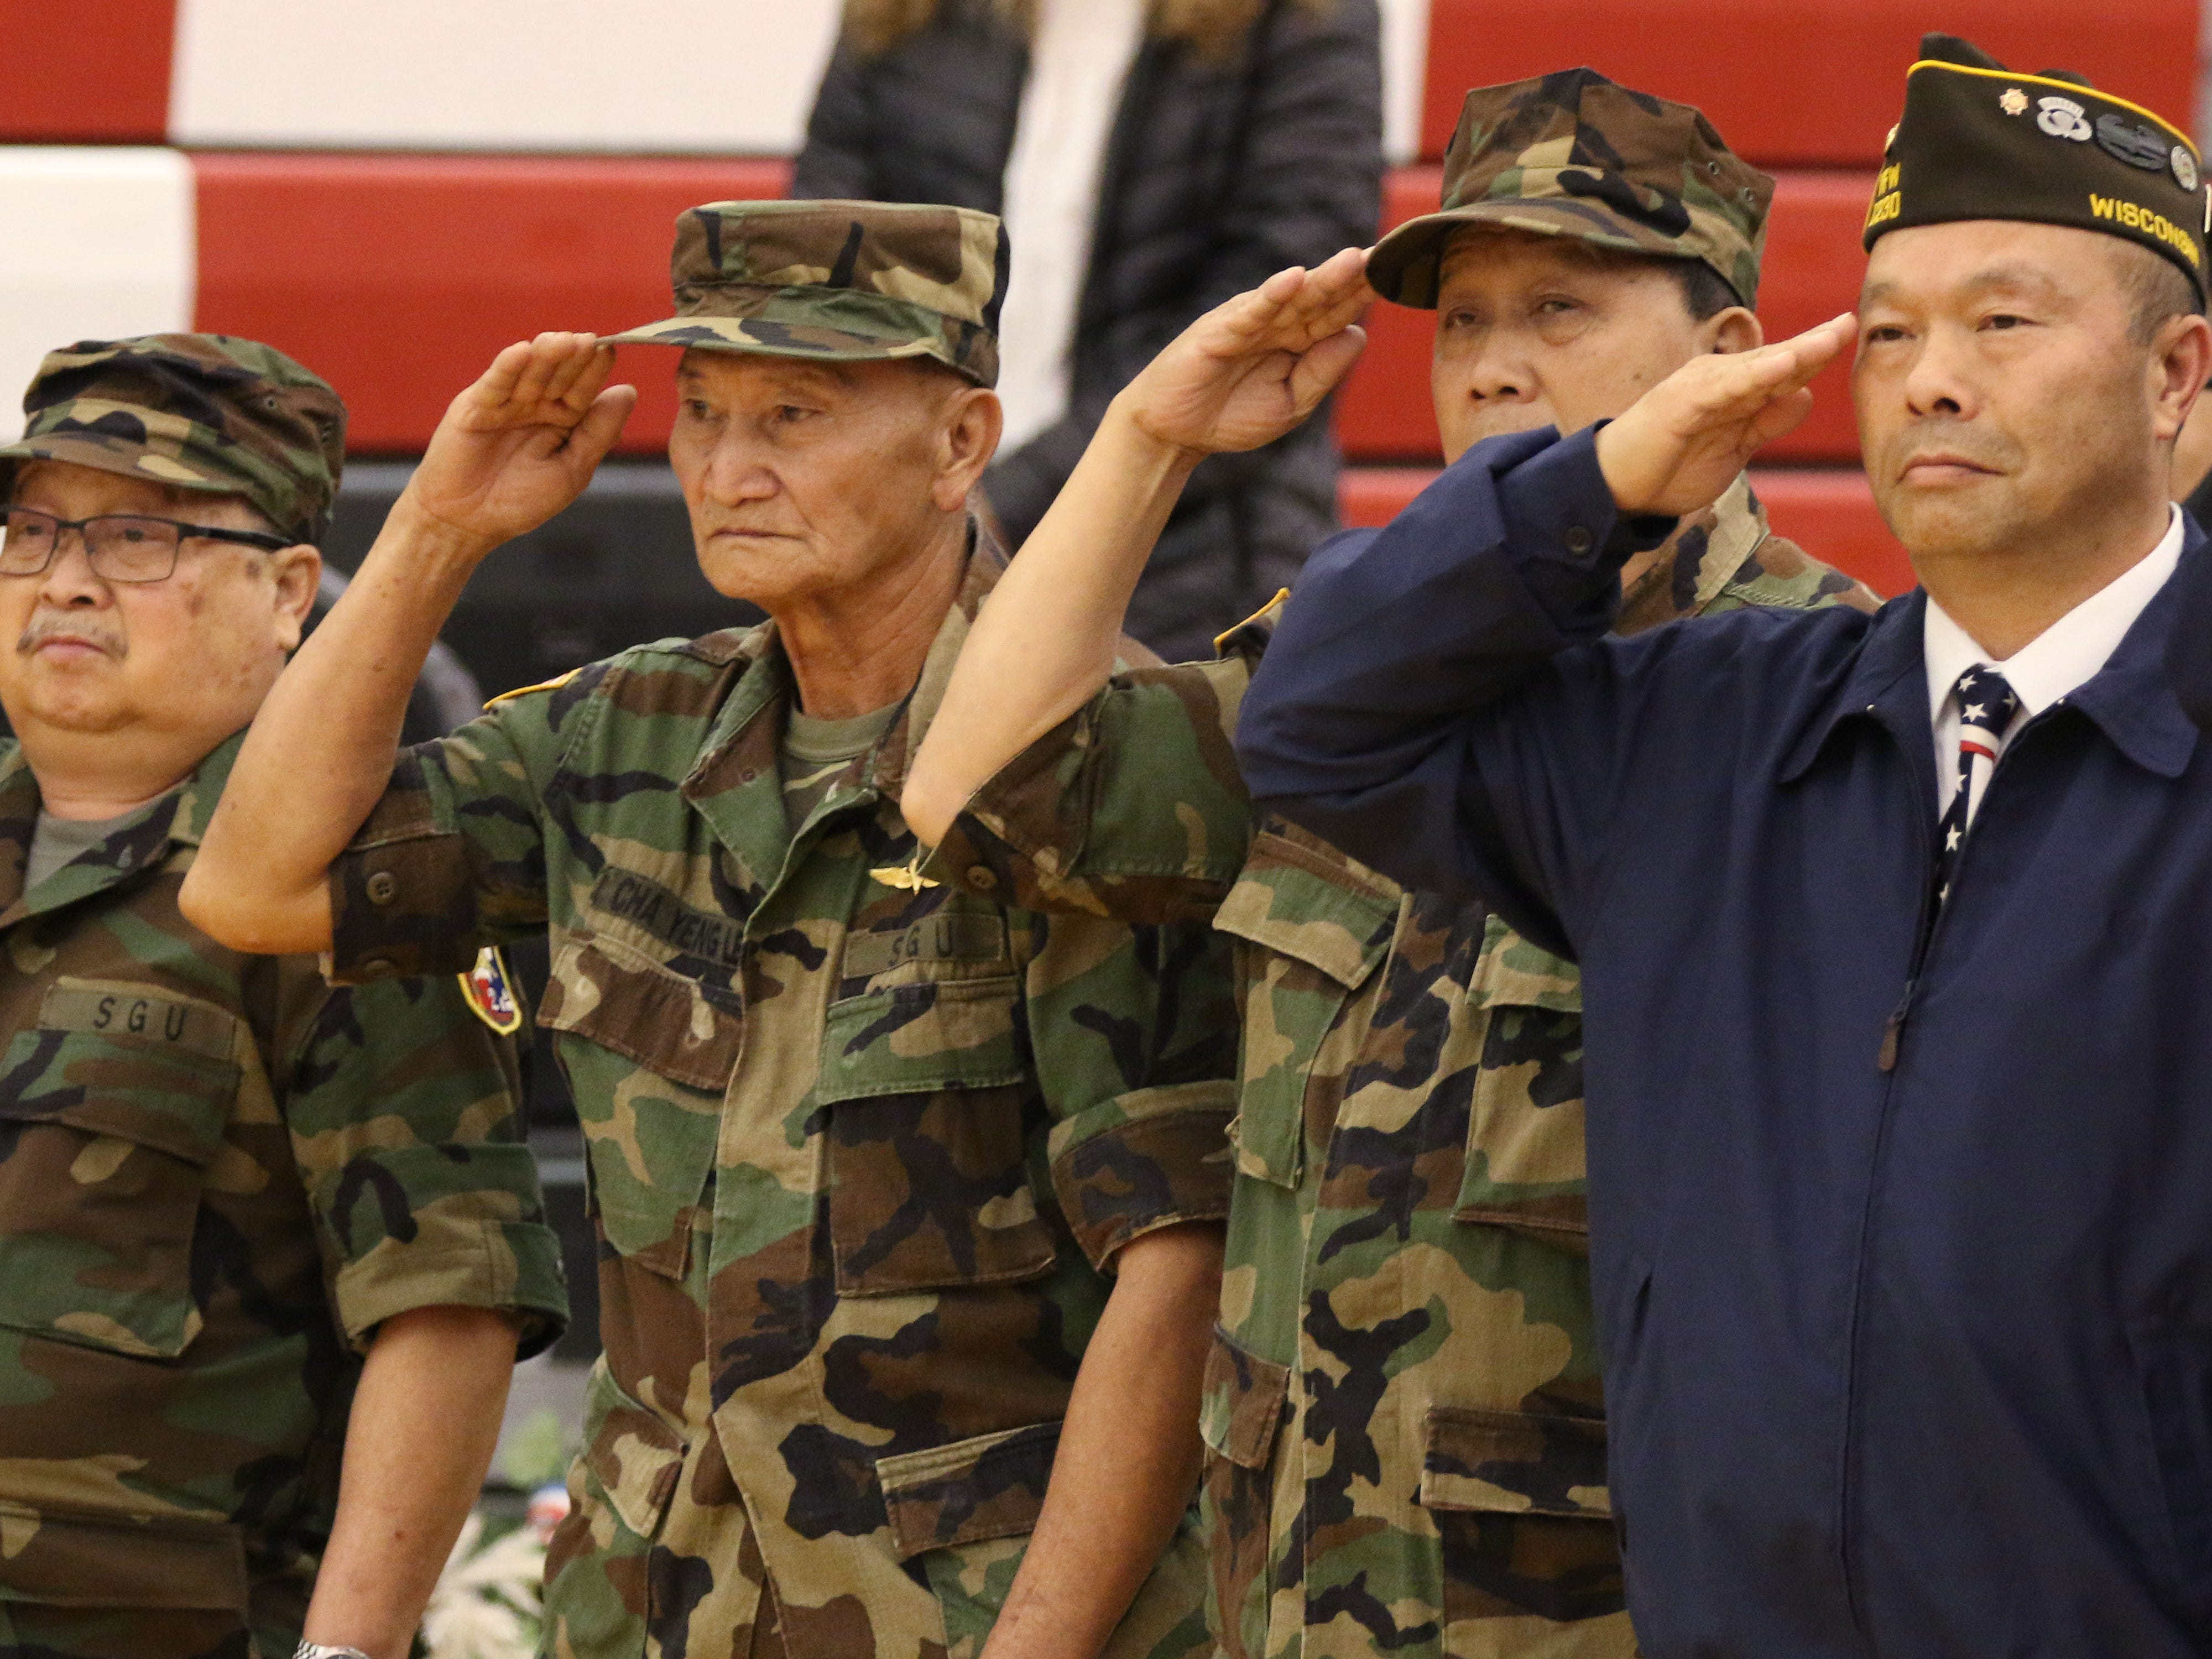 Hmong veterans salute the flag during the playing of the national anthem during the Veterans Day Program held at Sheboygan South High School, Friday, November 9, 2018, in Sheboygan, Wis.